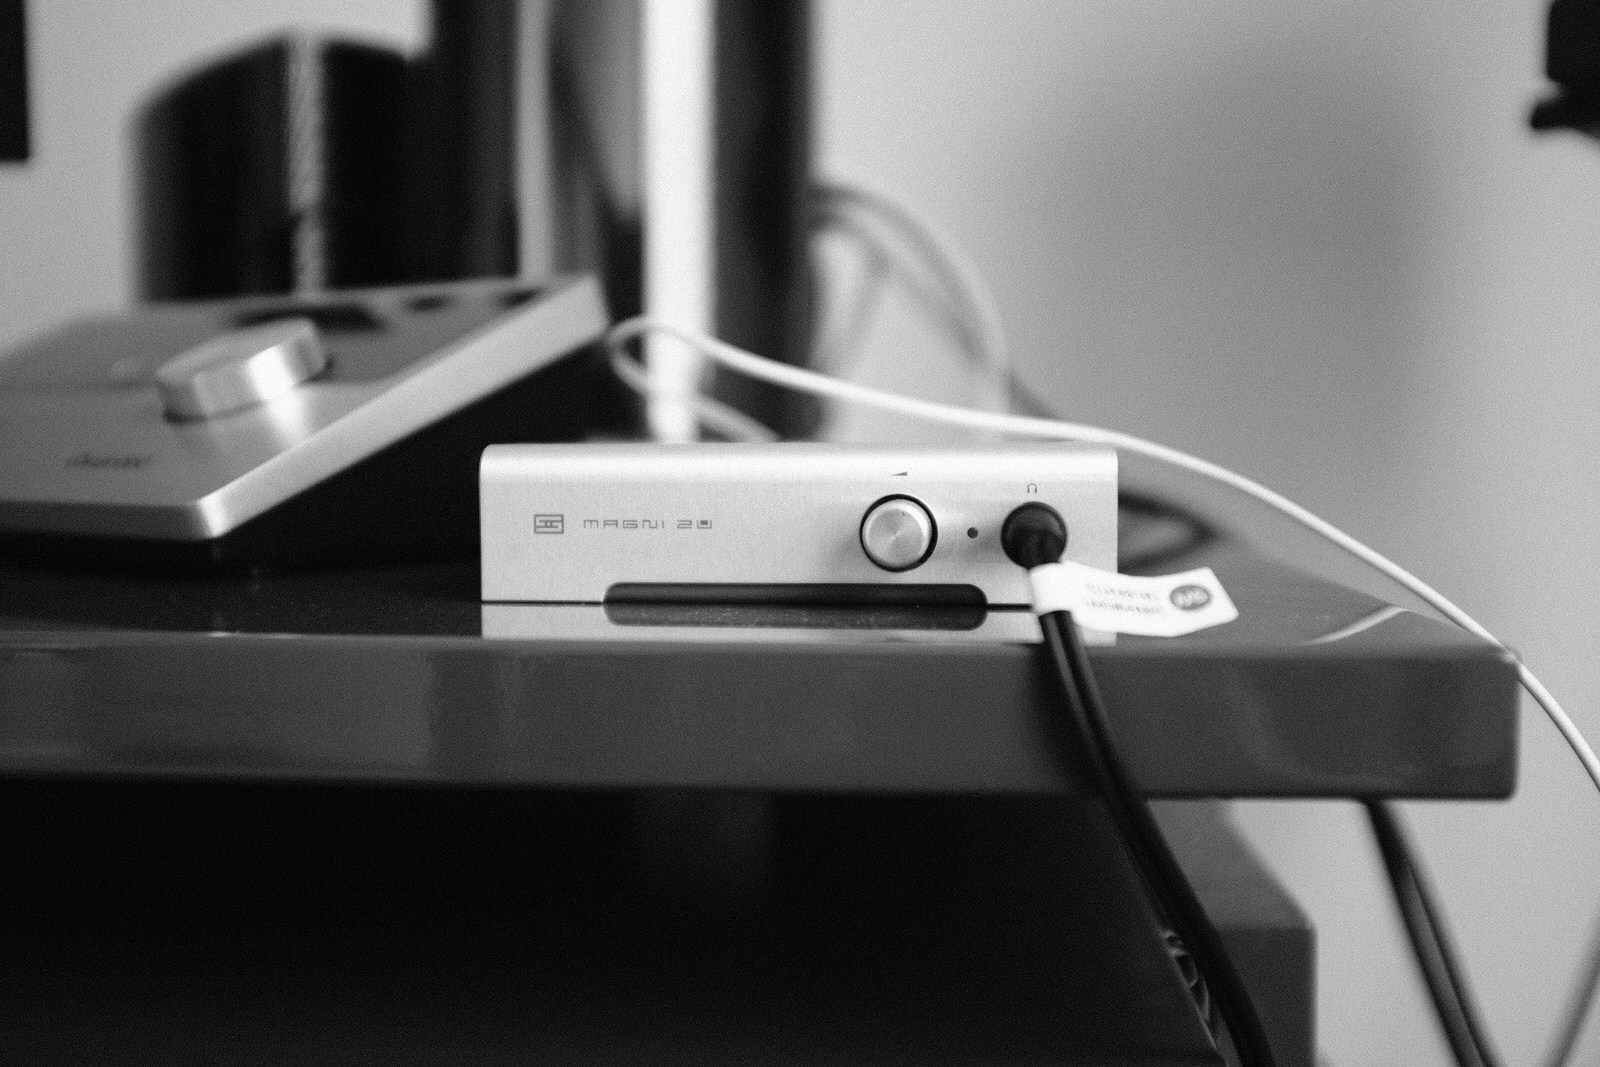 An image of the Schiit Magni 2.